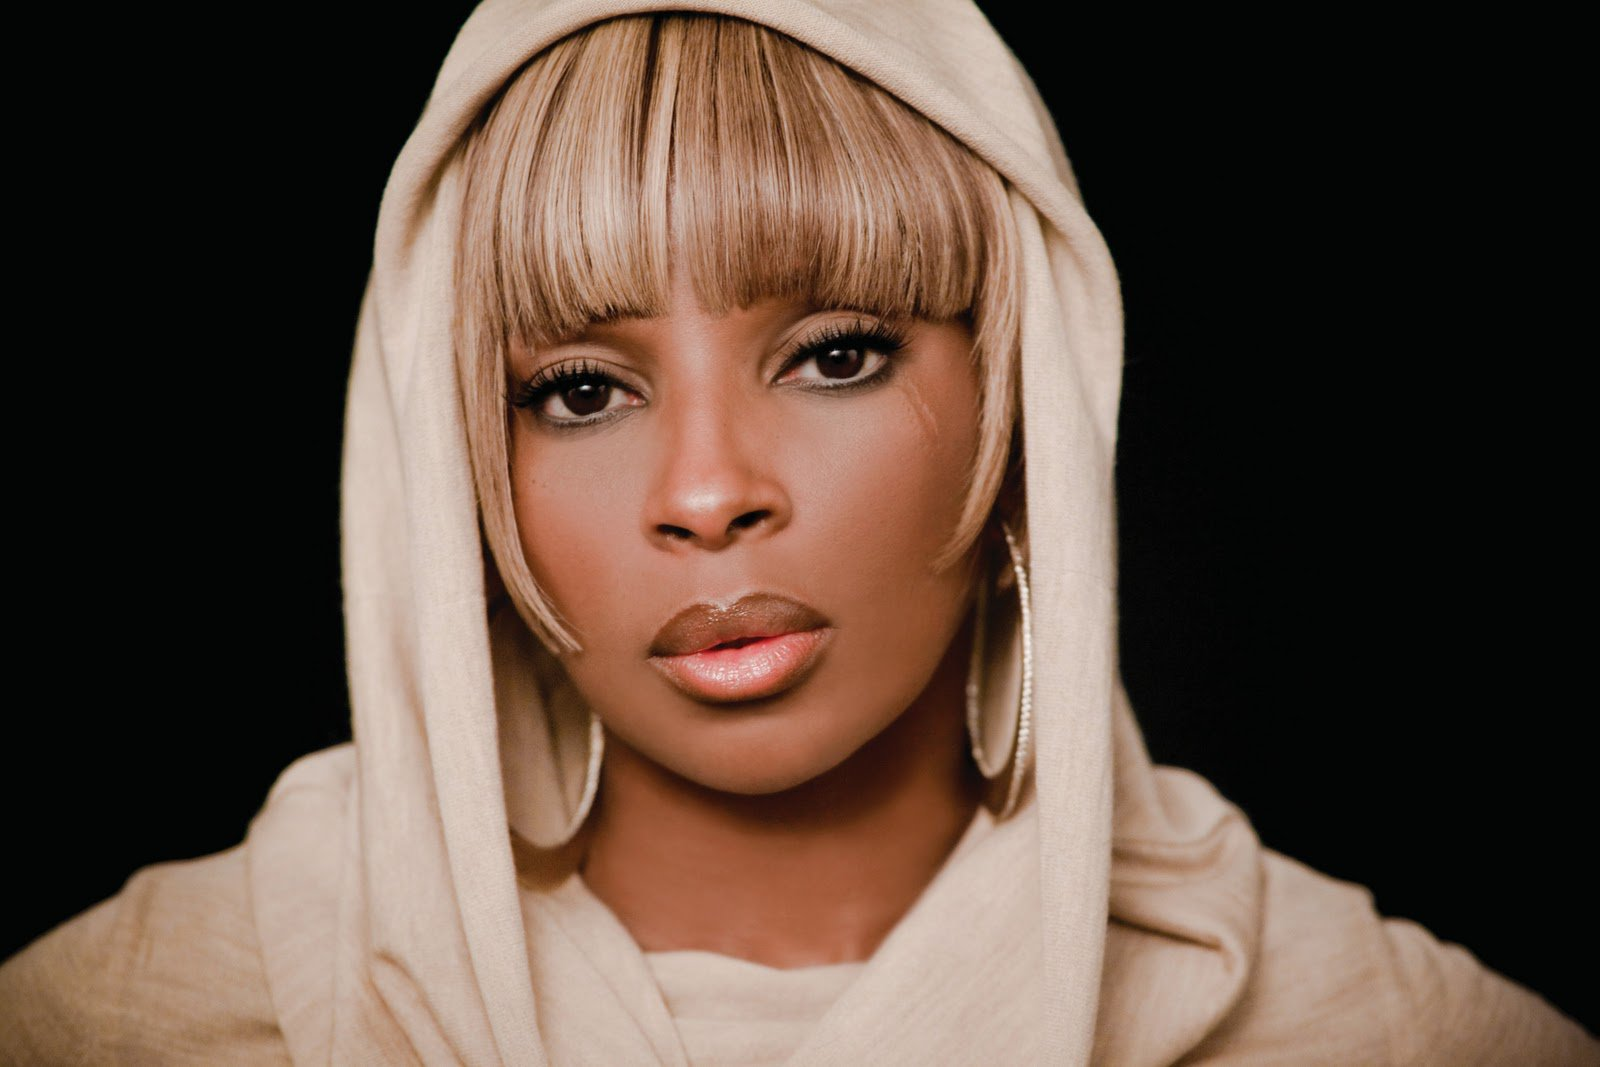 Happy 47th birthday to Mary J. Blige today!